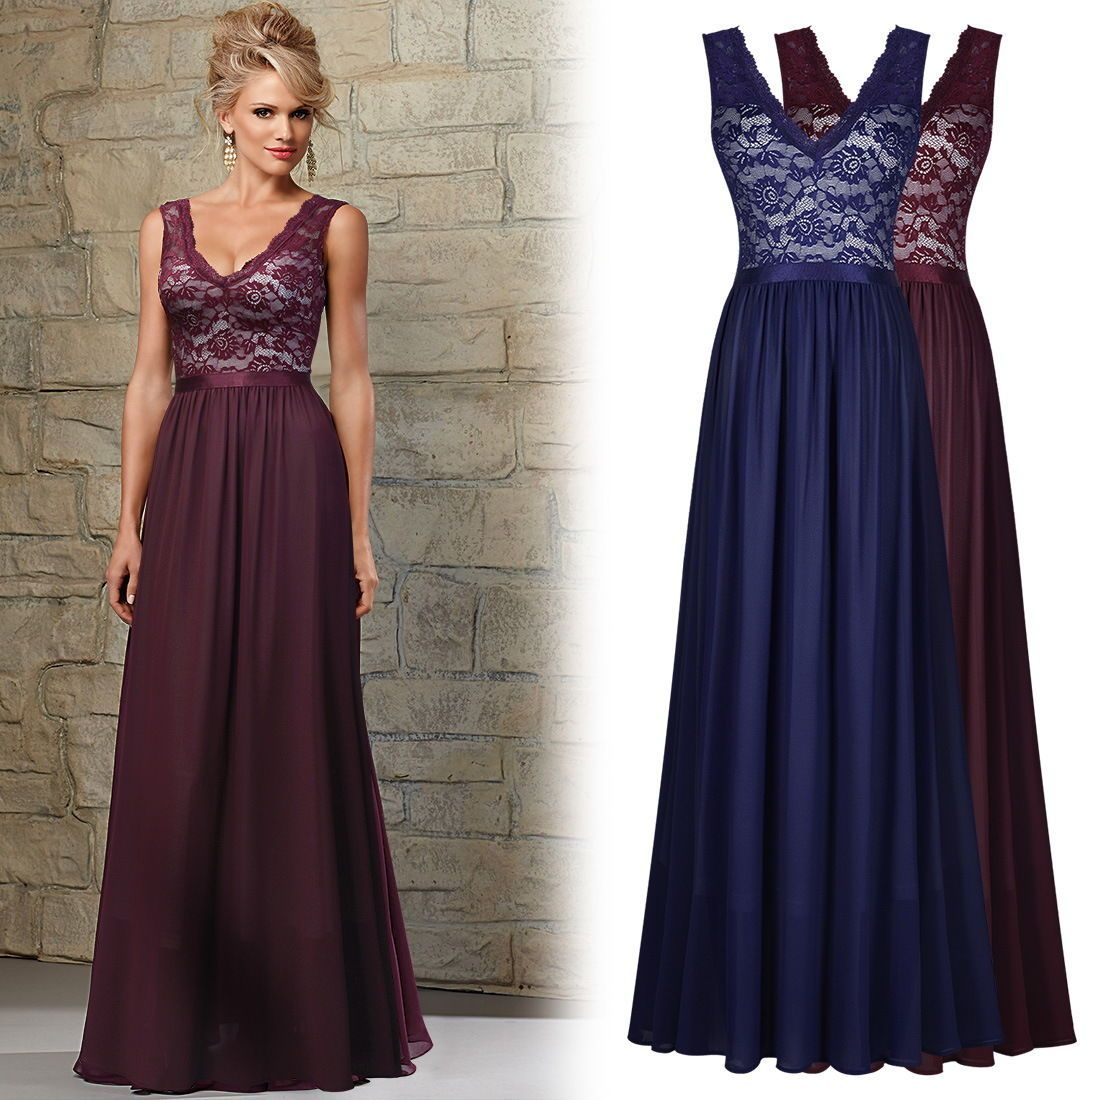 Cool awesome womenus vintage bridesmaid evening dress gown party